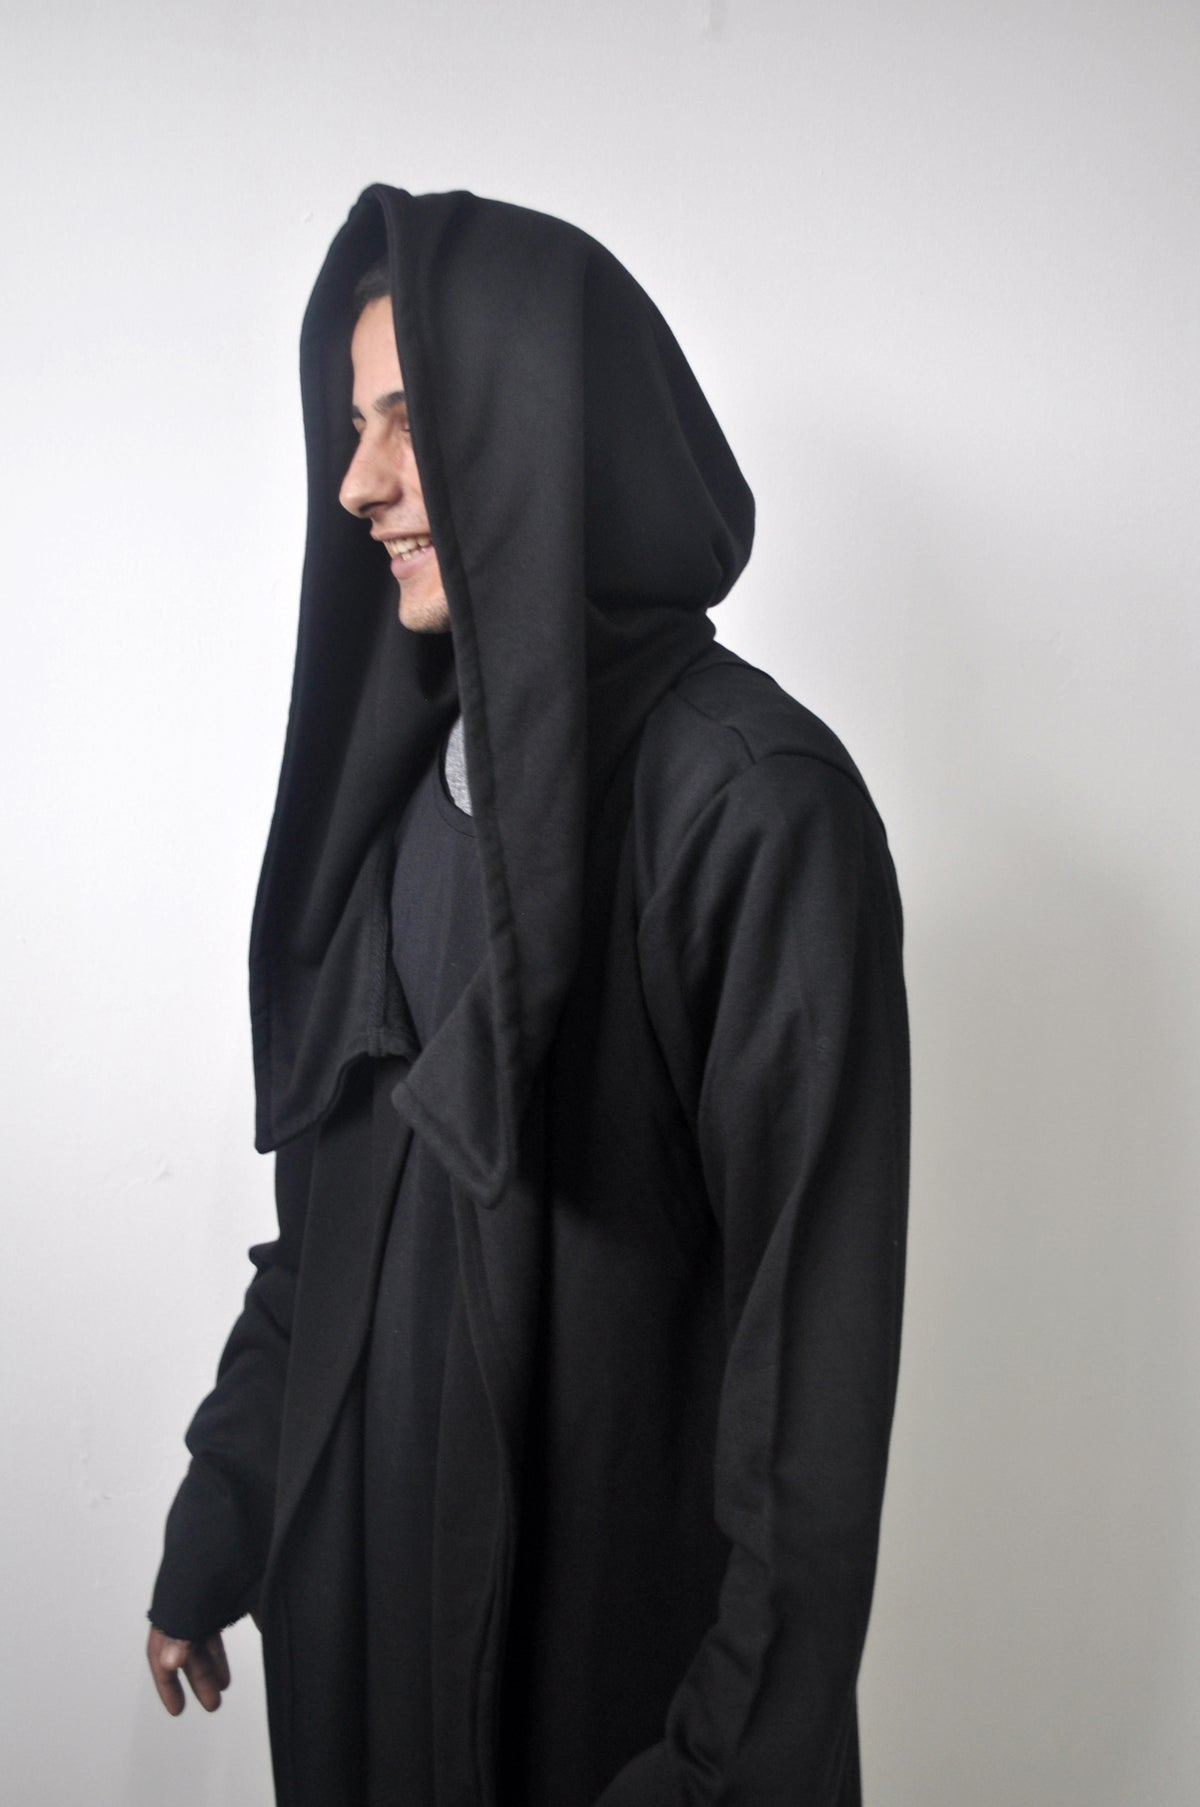 Assassin's Creed Men's Oversized Hood Cardigan Long Sleeve / Raw Edges Cloak Hooded Rope Long Asymmetric Coat Jacket